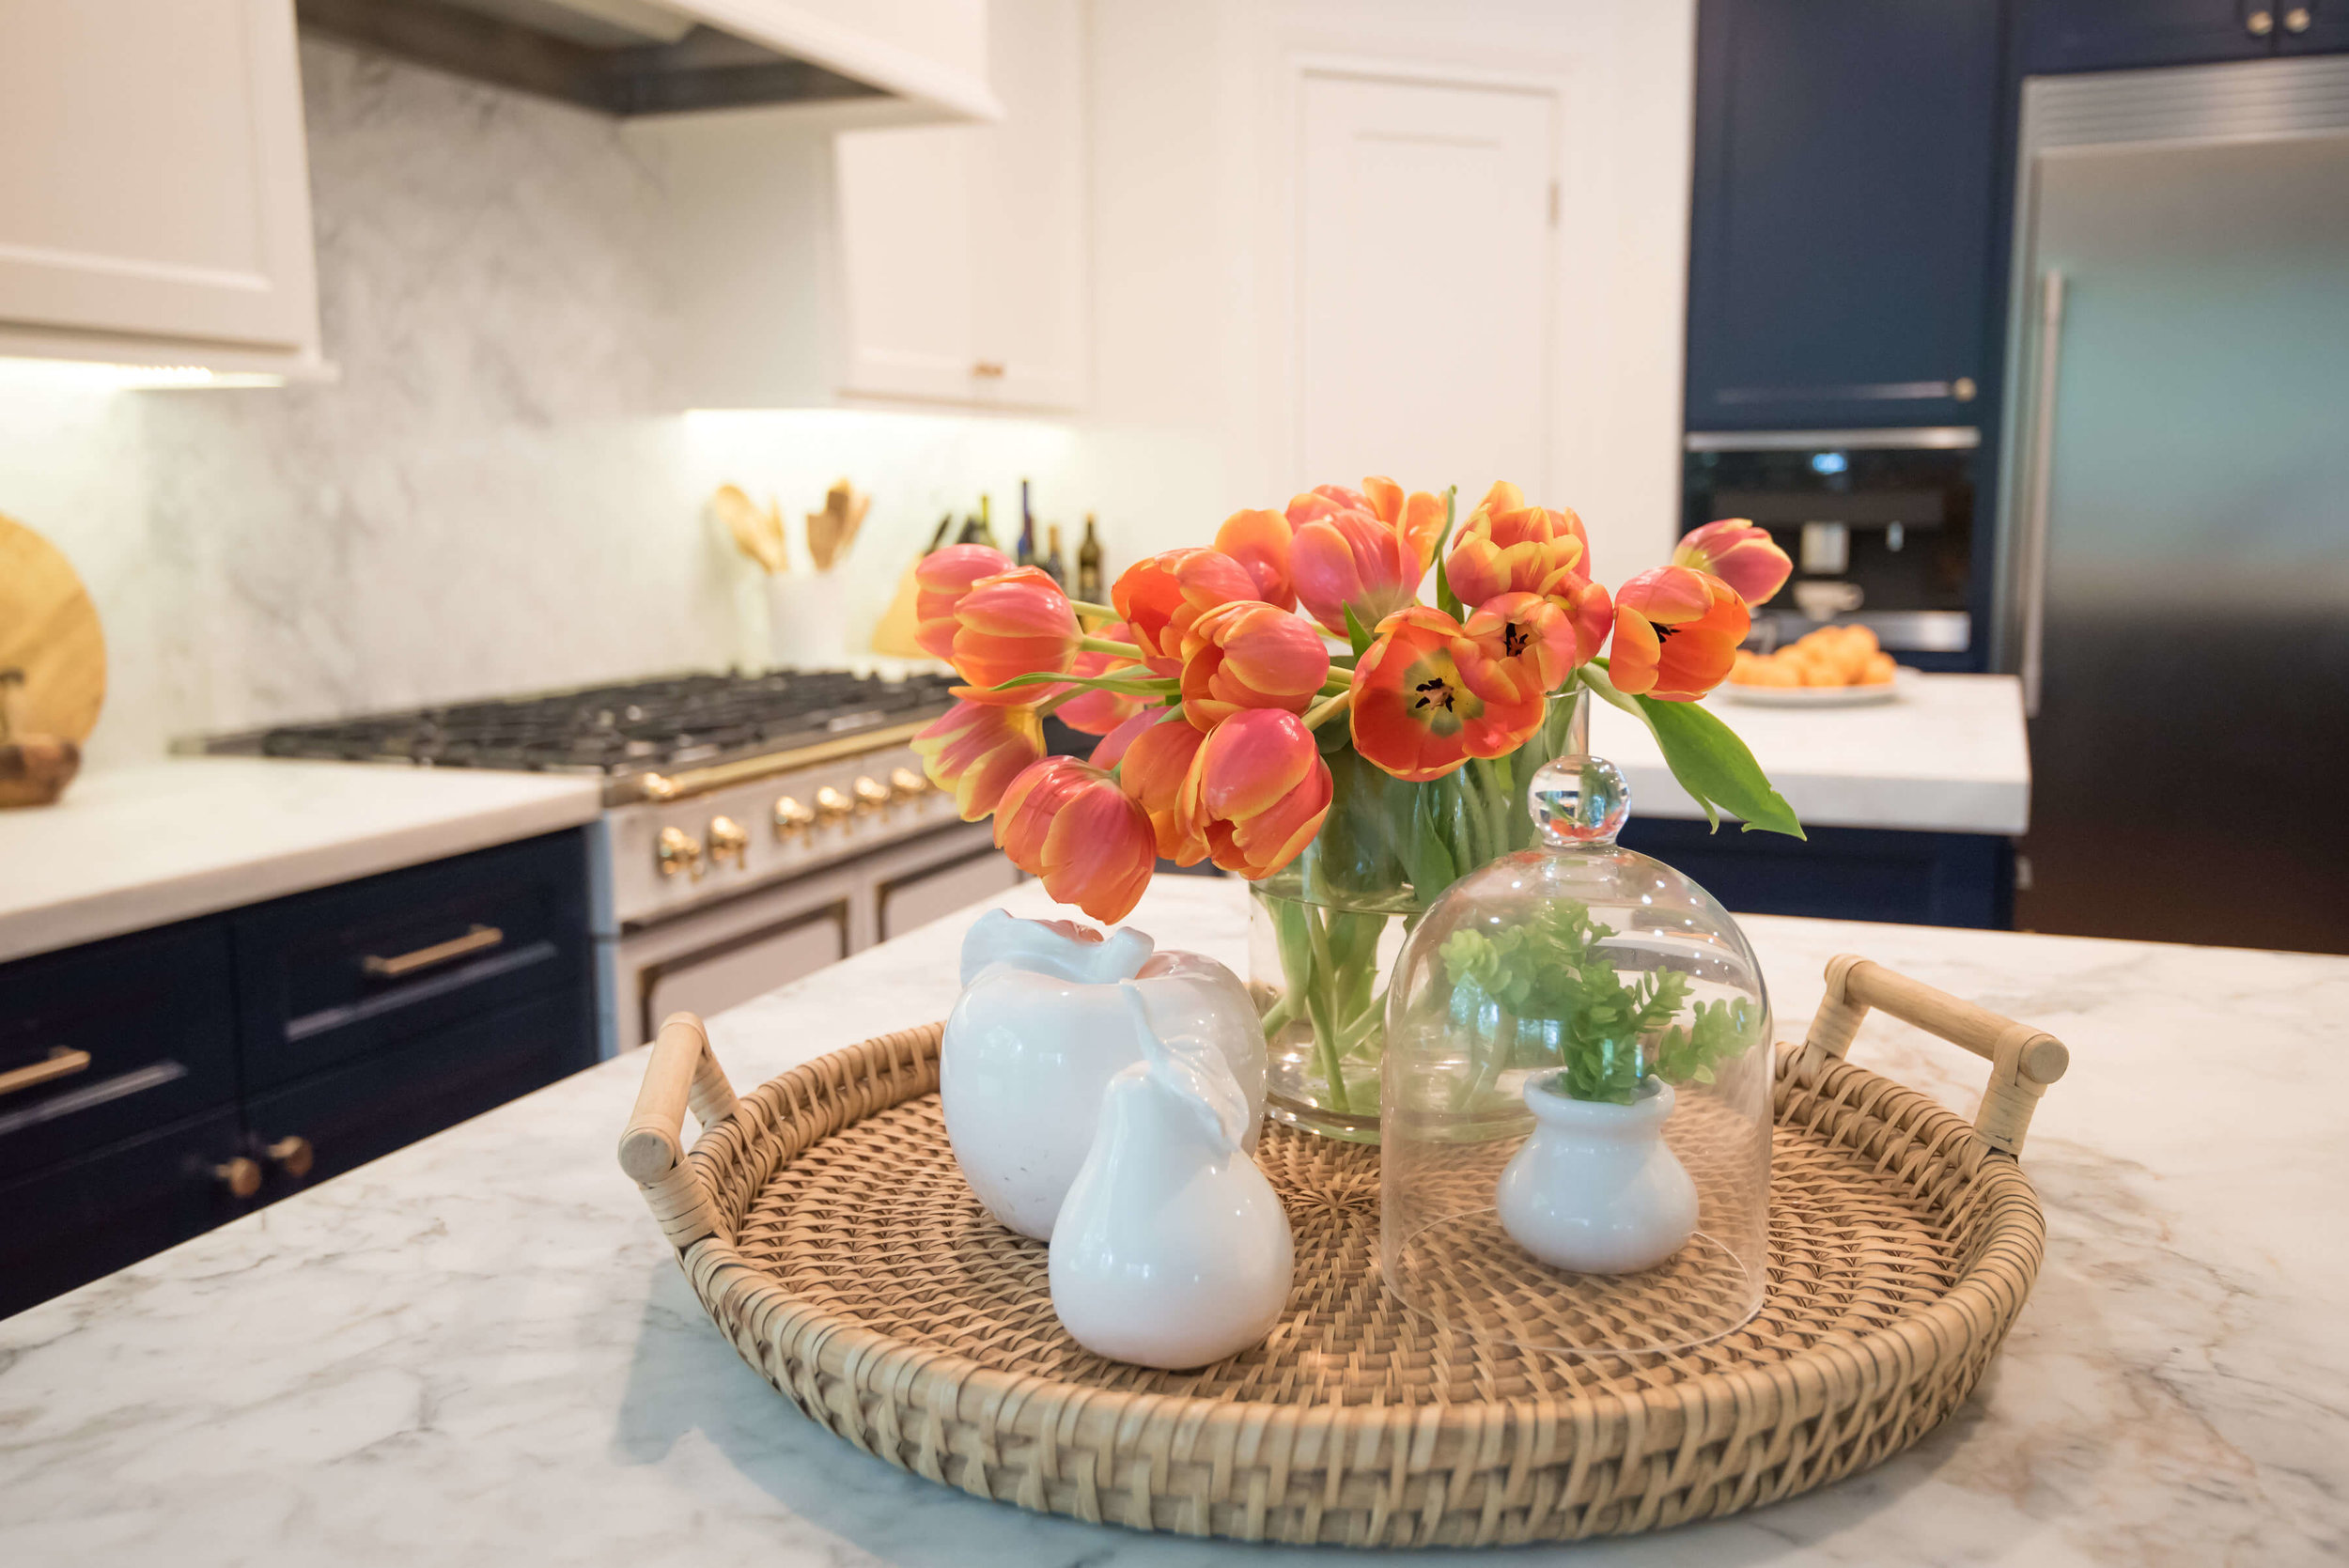 Kitchen Styling Tips, Project Design - Carla Aston, Photographer: Lauren Giles